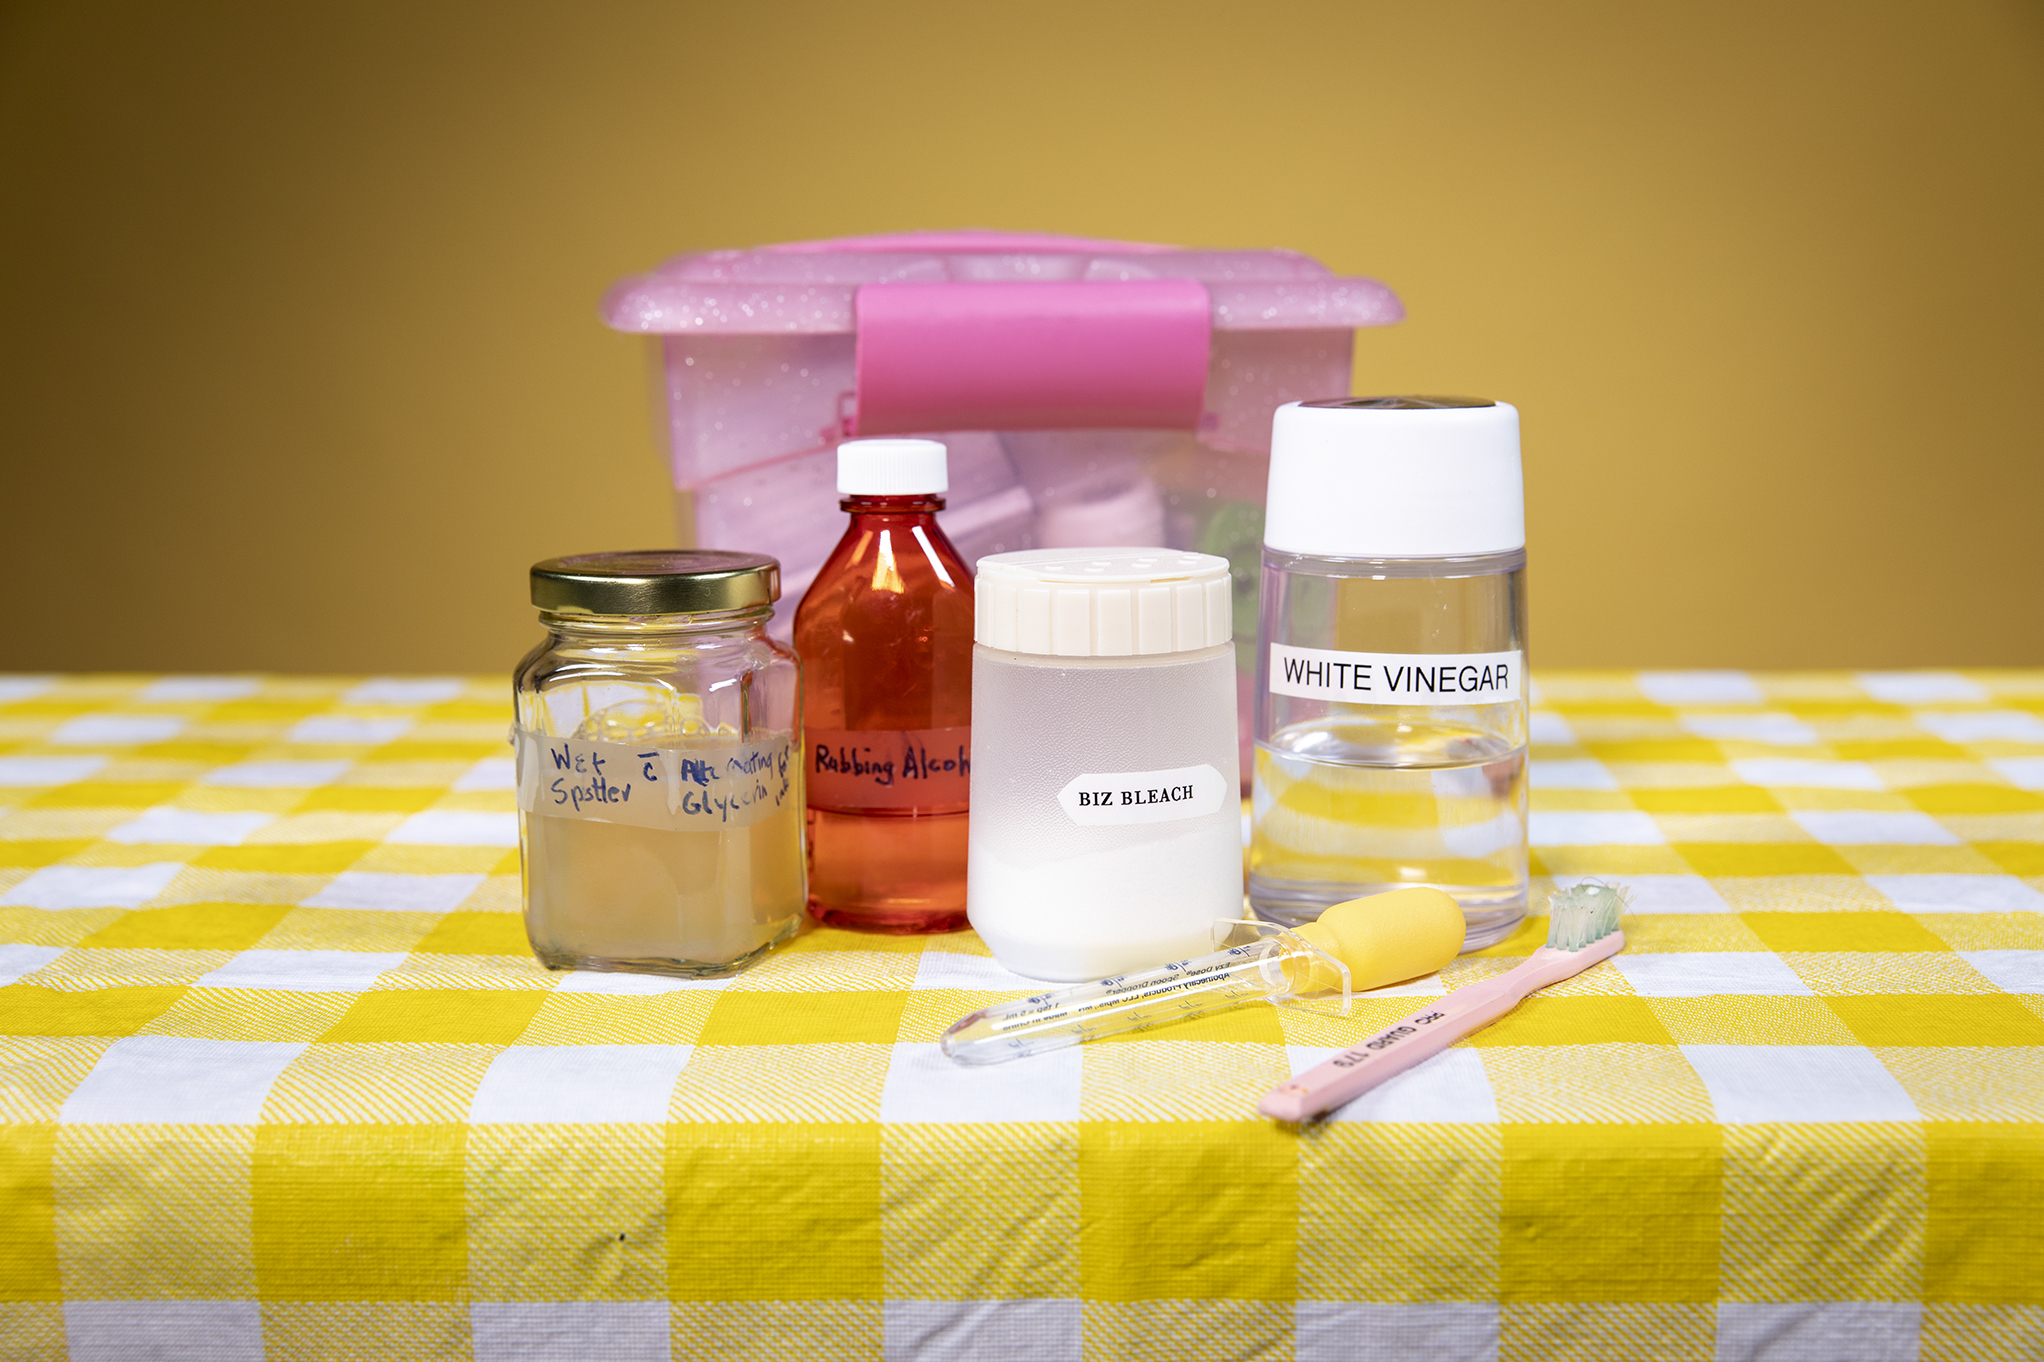 6 Tips For How To Get Stains Out Life Kit Npr - How To Remove Old White Heat Stains From Tablecloths